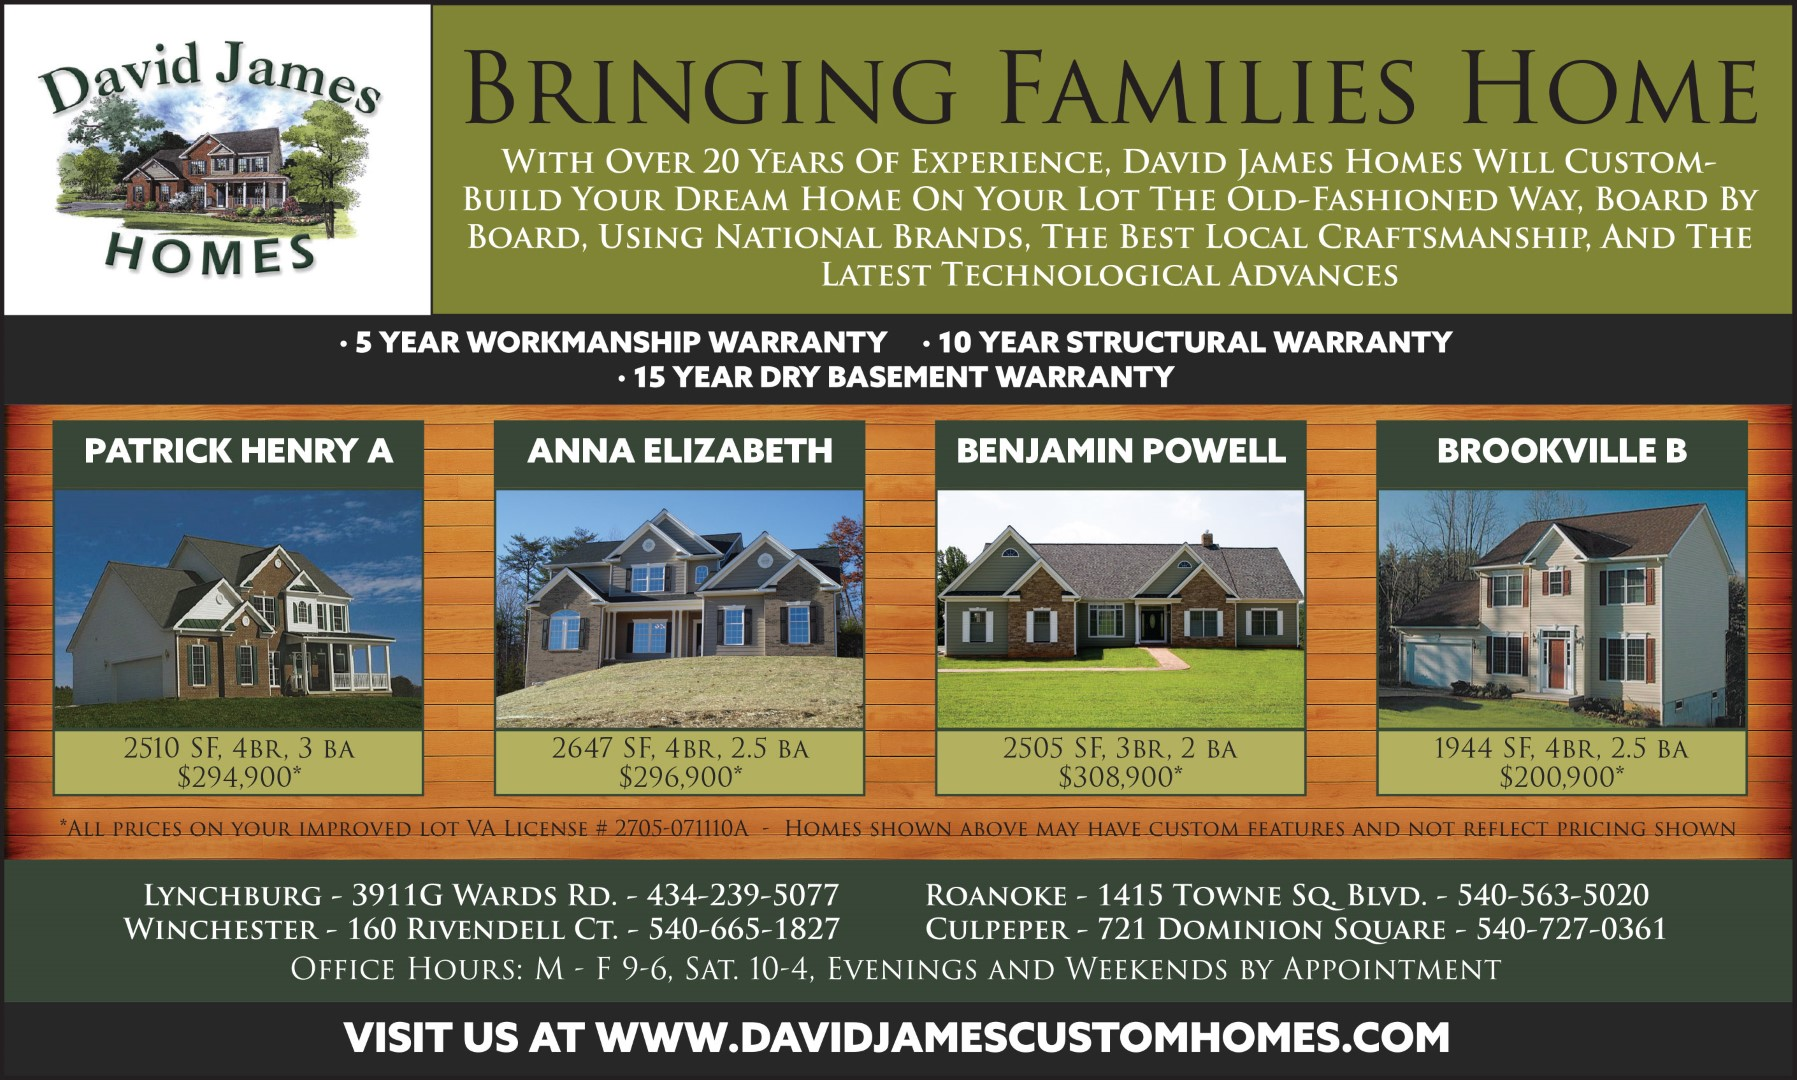 David James Custom Homes